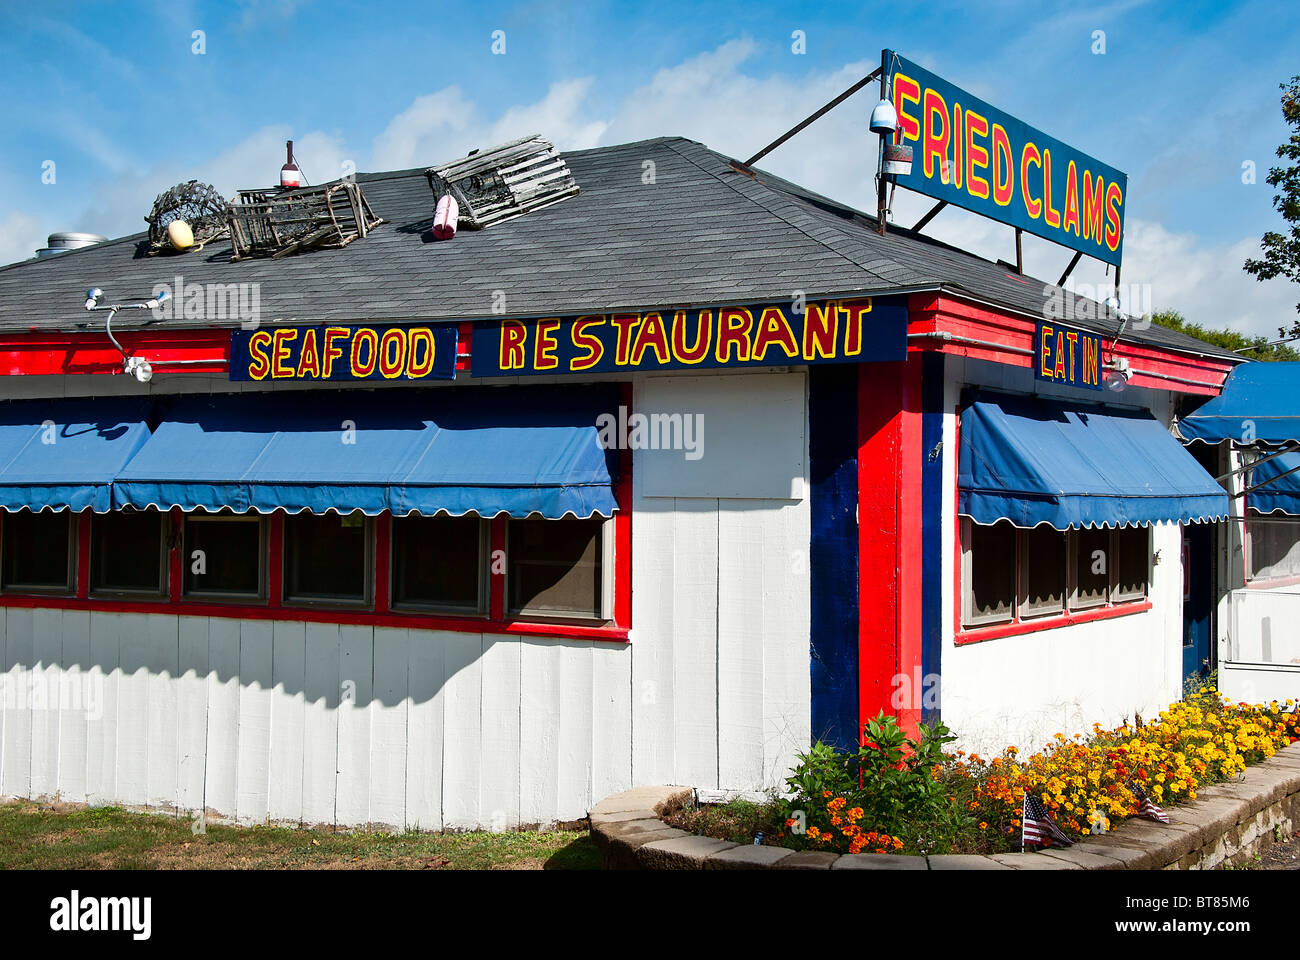 Seafood shack near York, Maine, USA - Stock Image